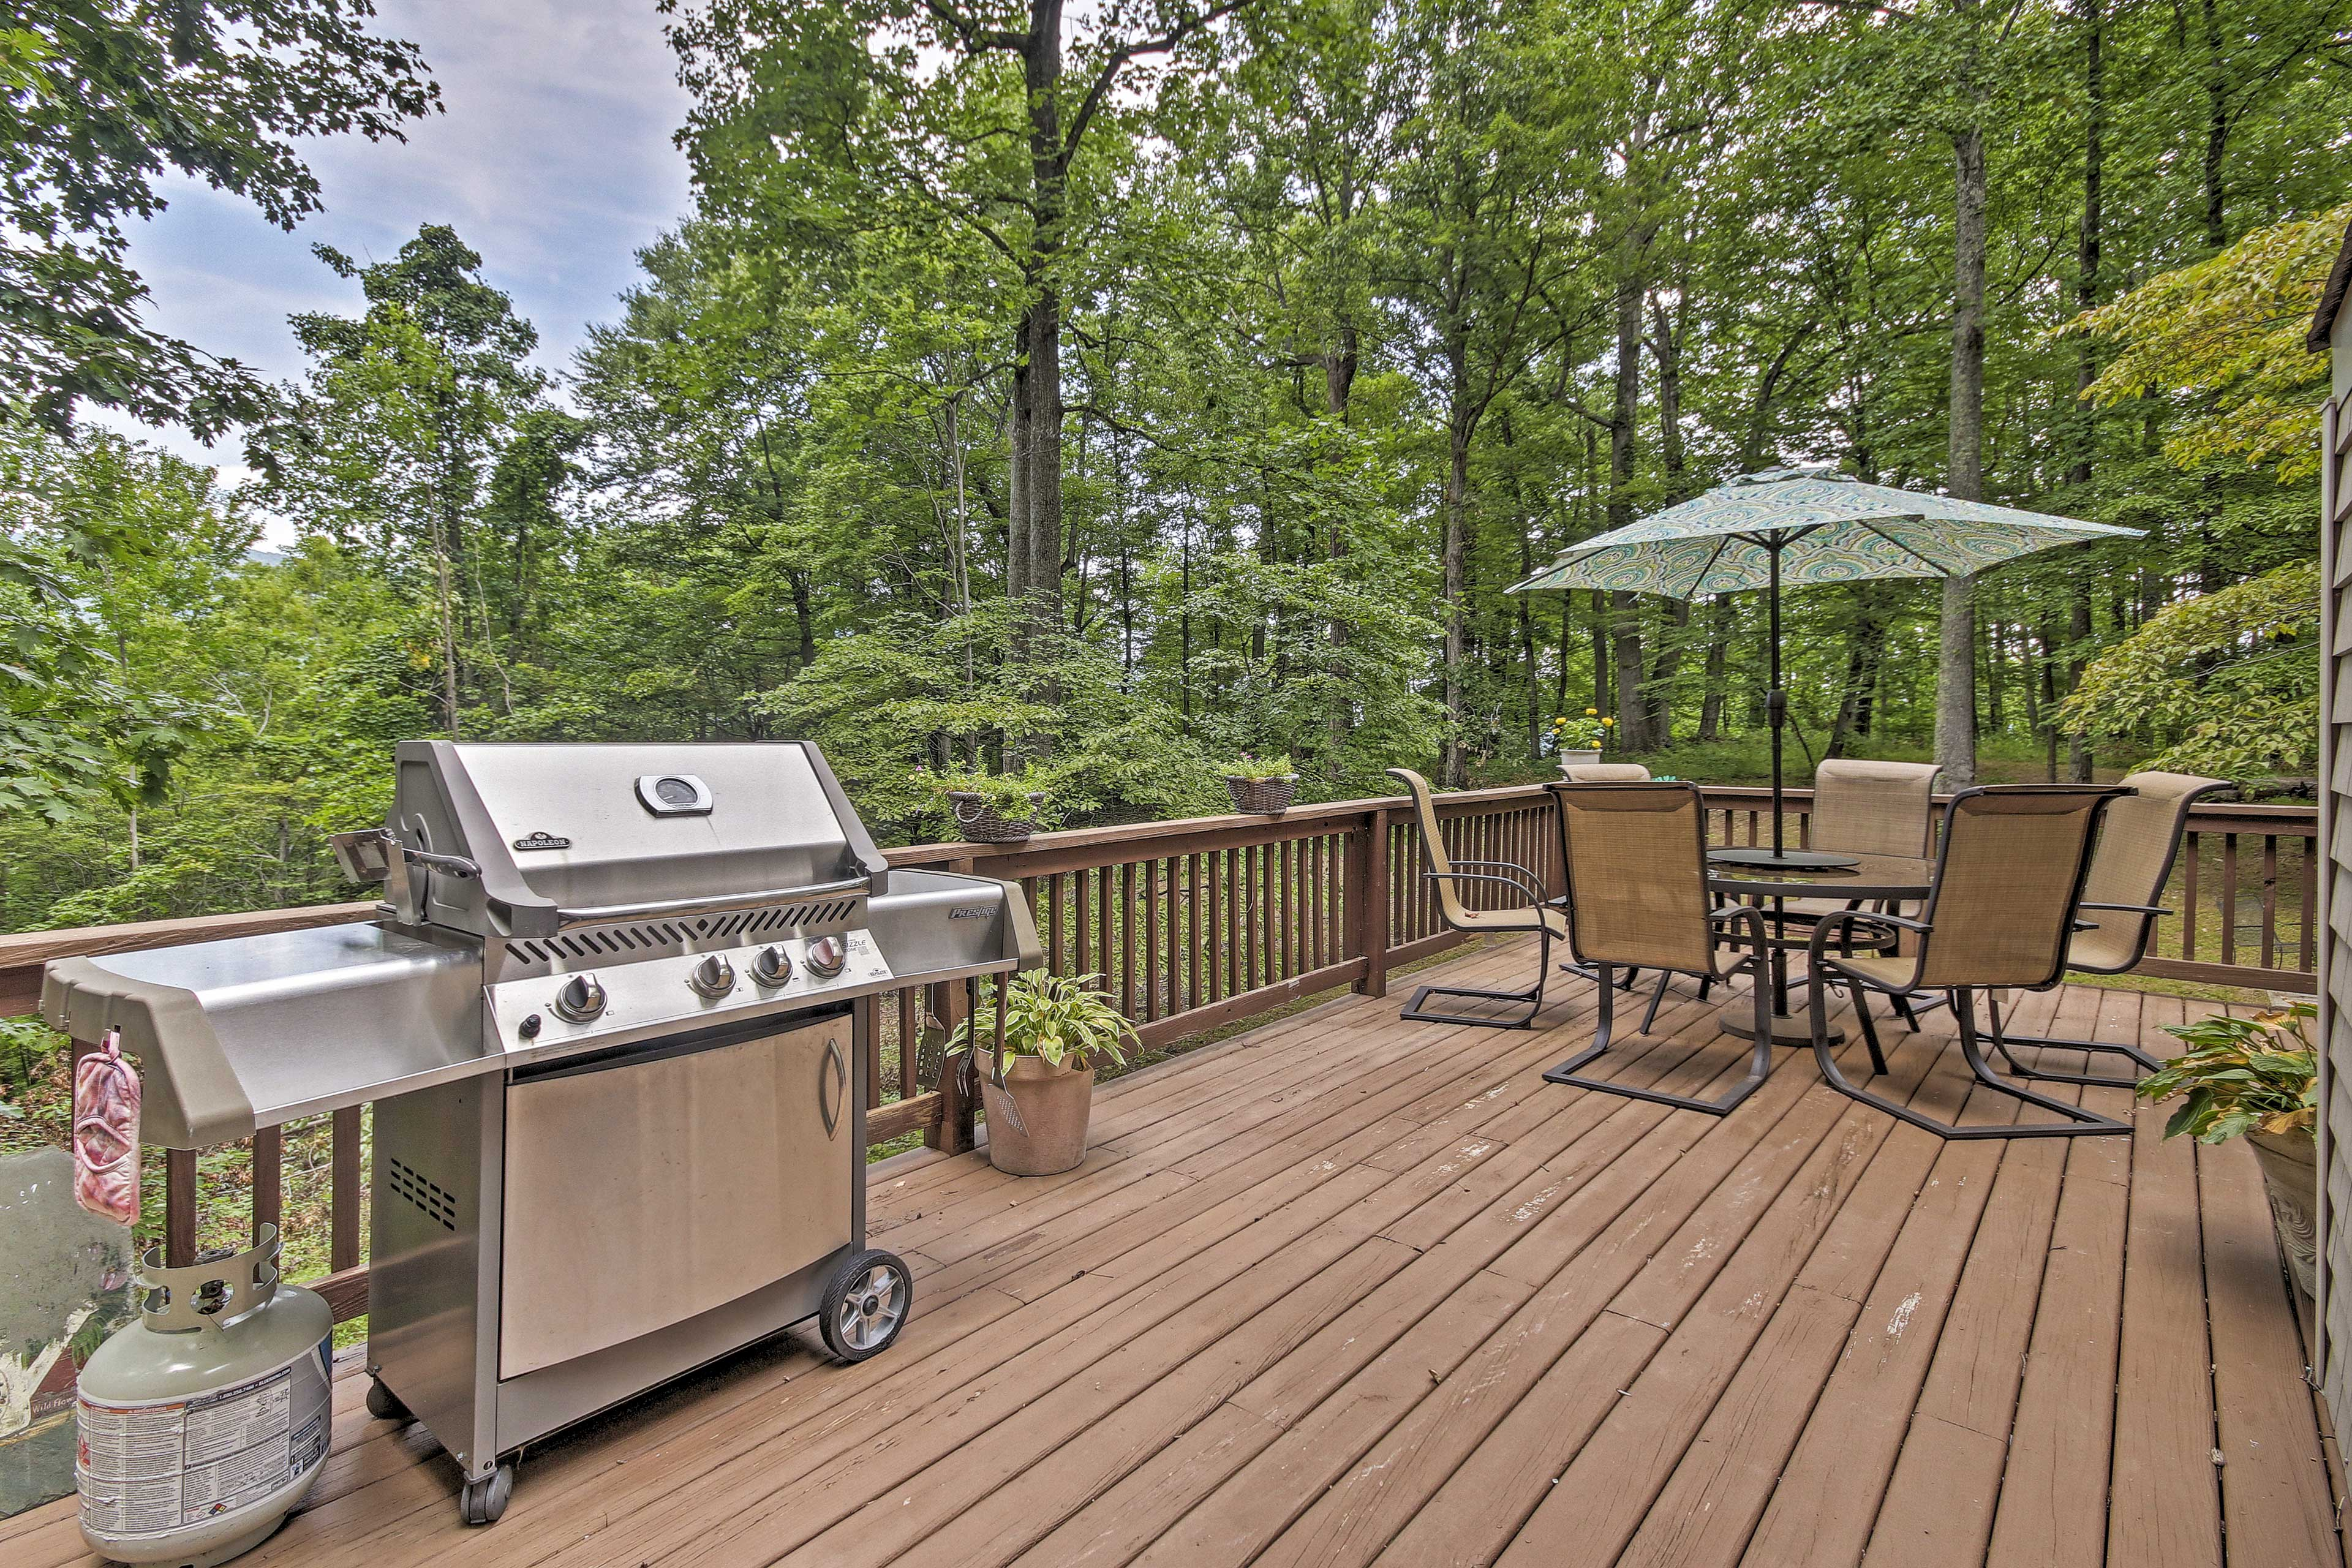 Be the grillmaster you've always wanted to be with this massive grill.